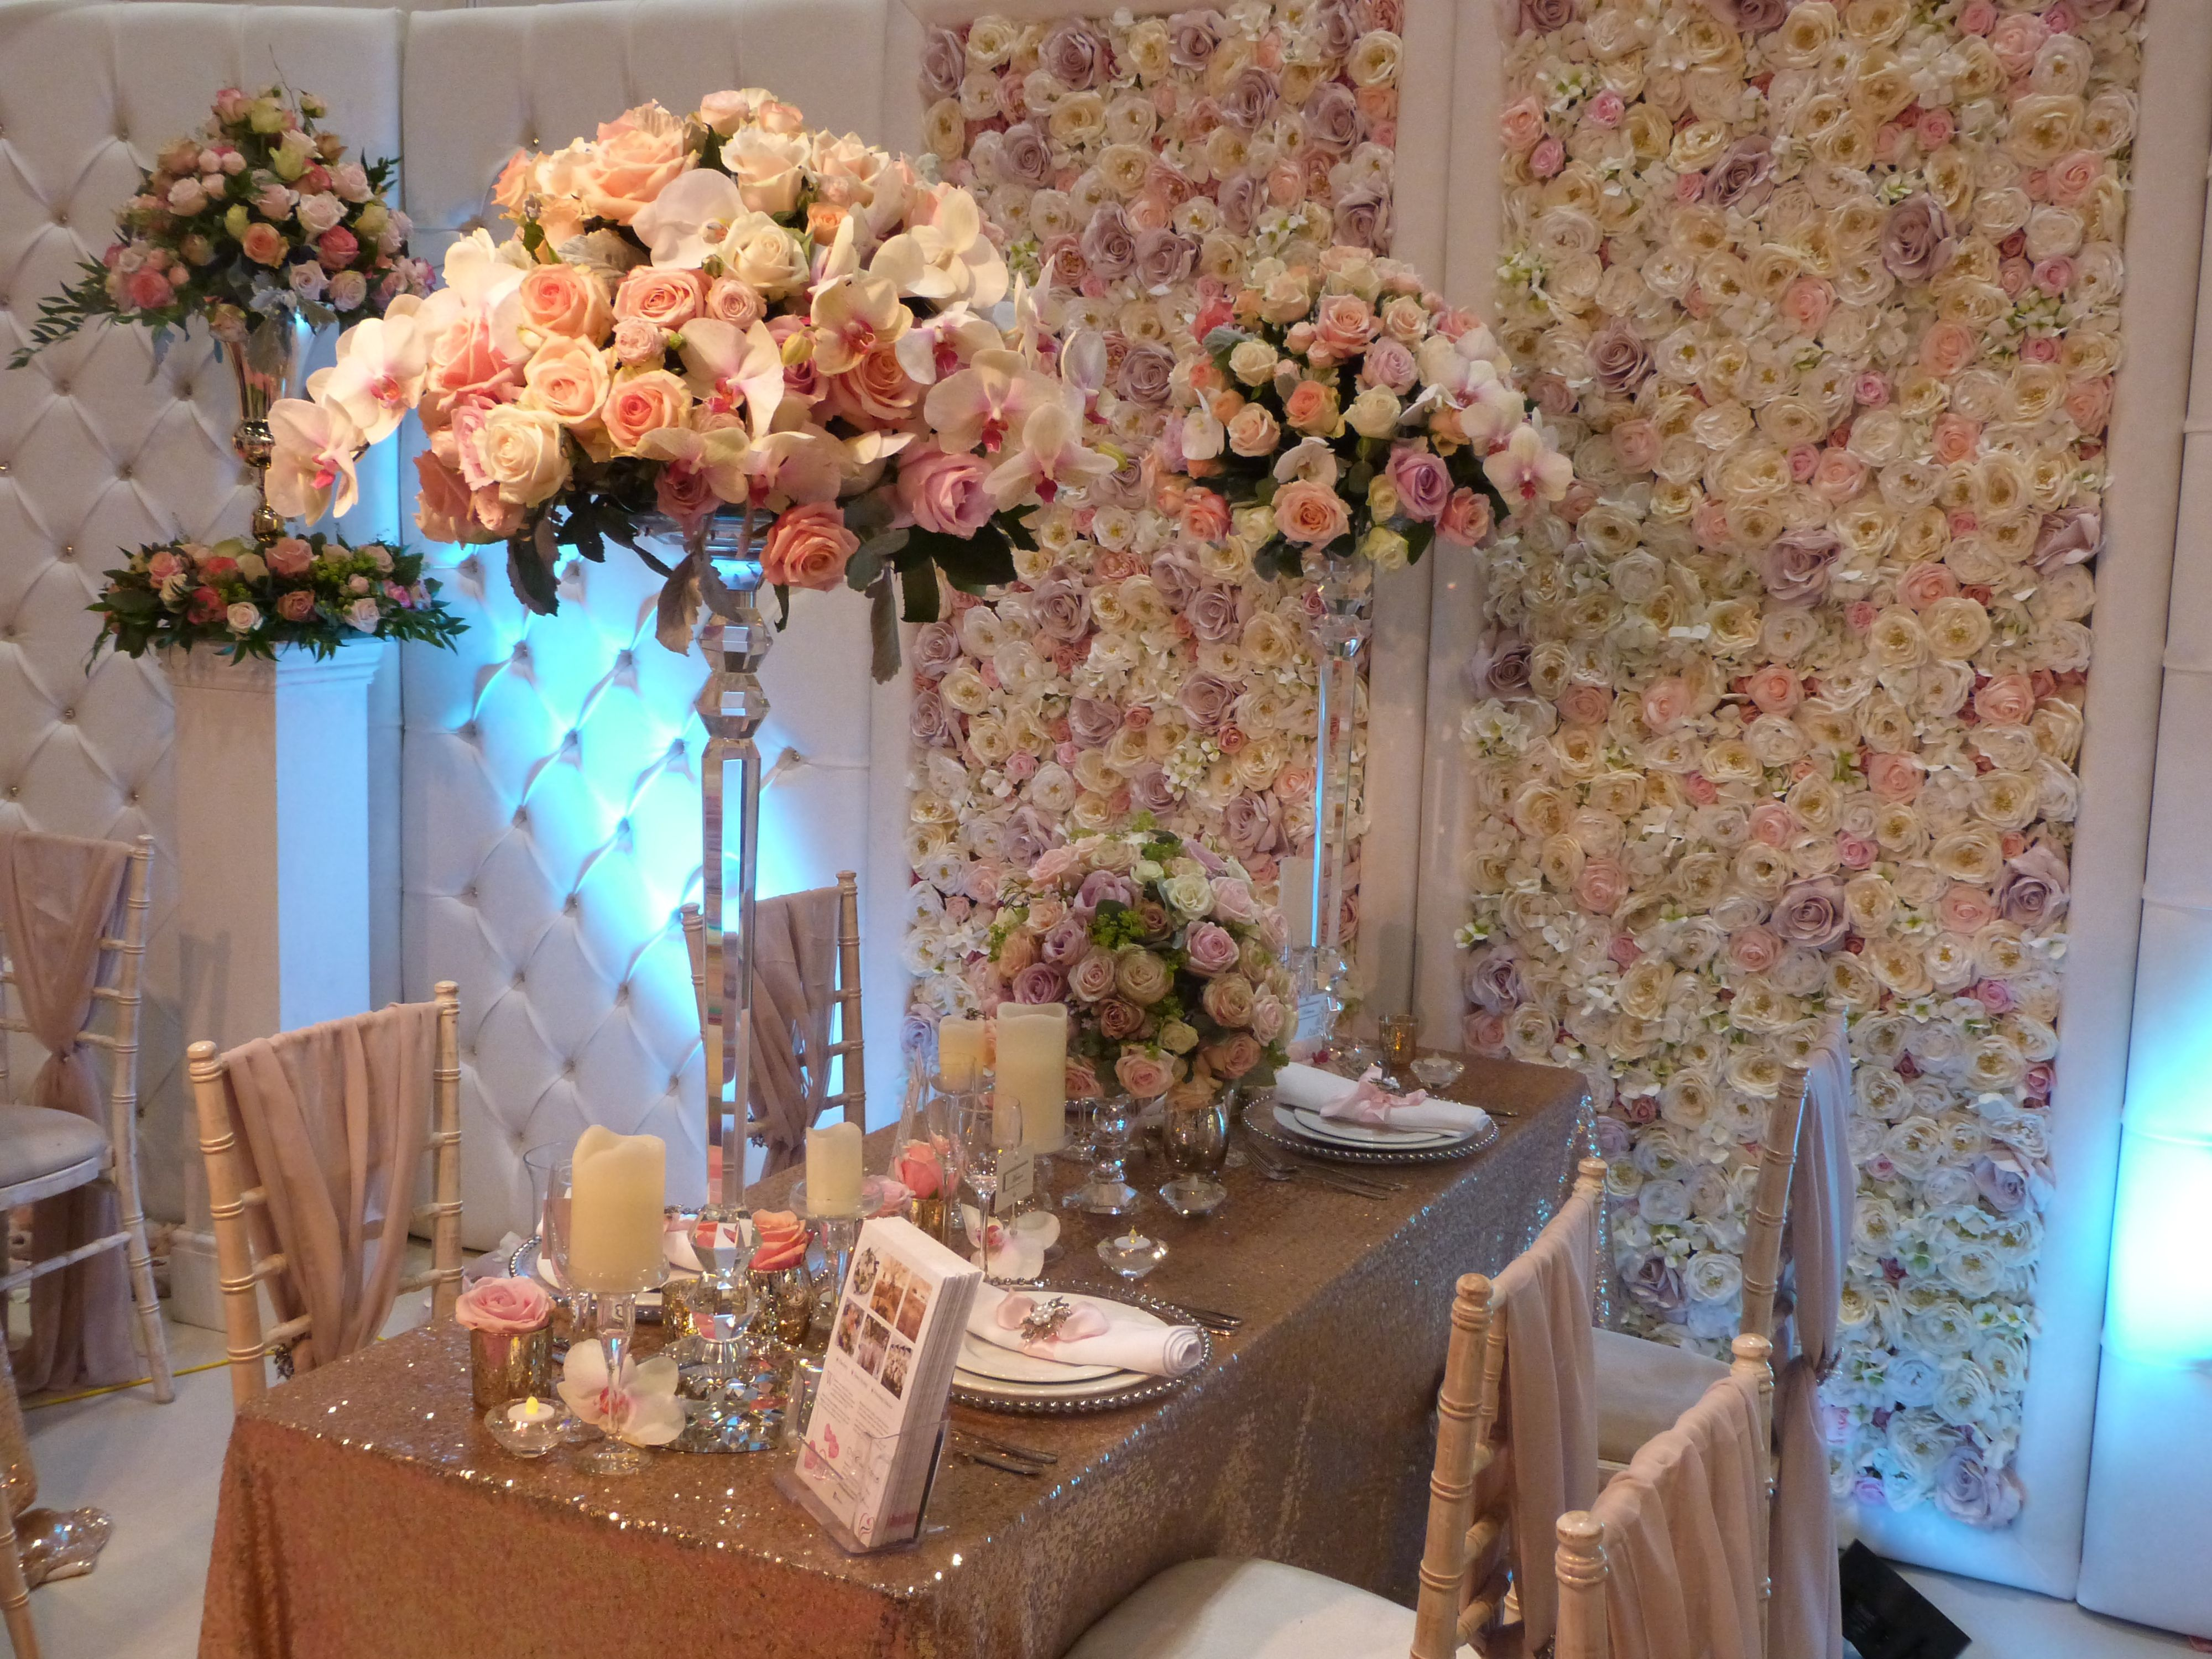 #rose #orchid #pink #peach #ivory #cream #crystal #pillar